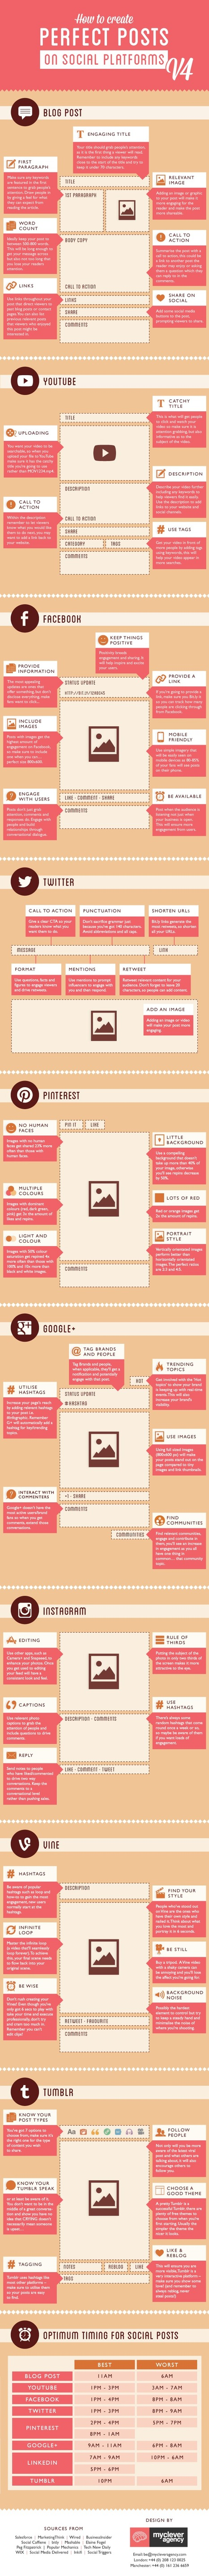 The Art of Creating Perfect Social Media Posts - infographic | Agrobrokercommunitymanager | Scoop.it